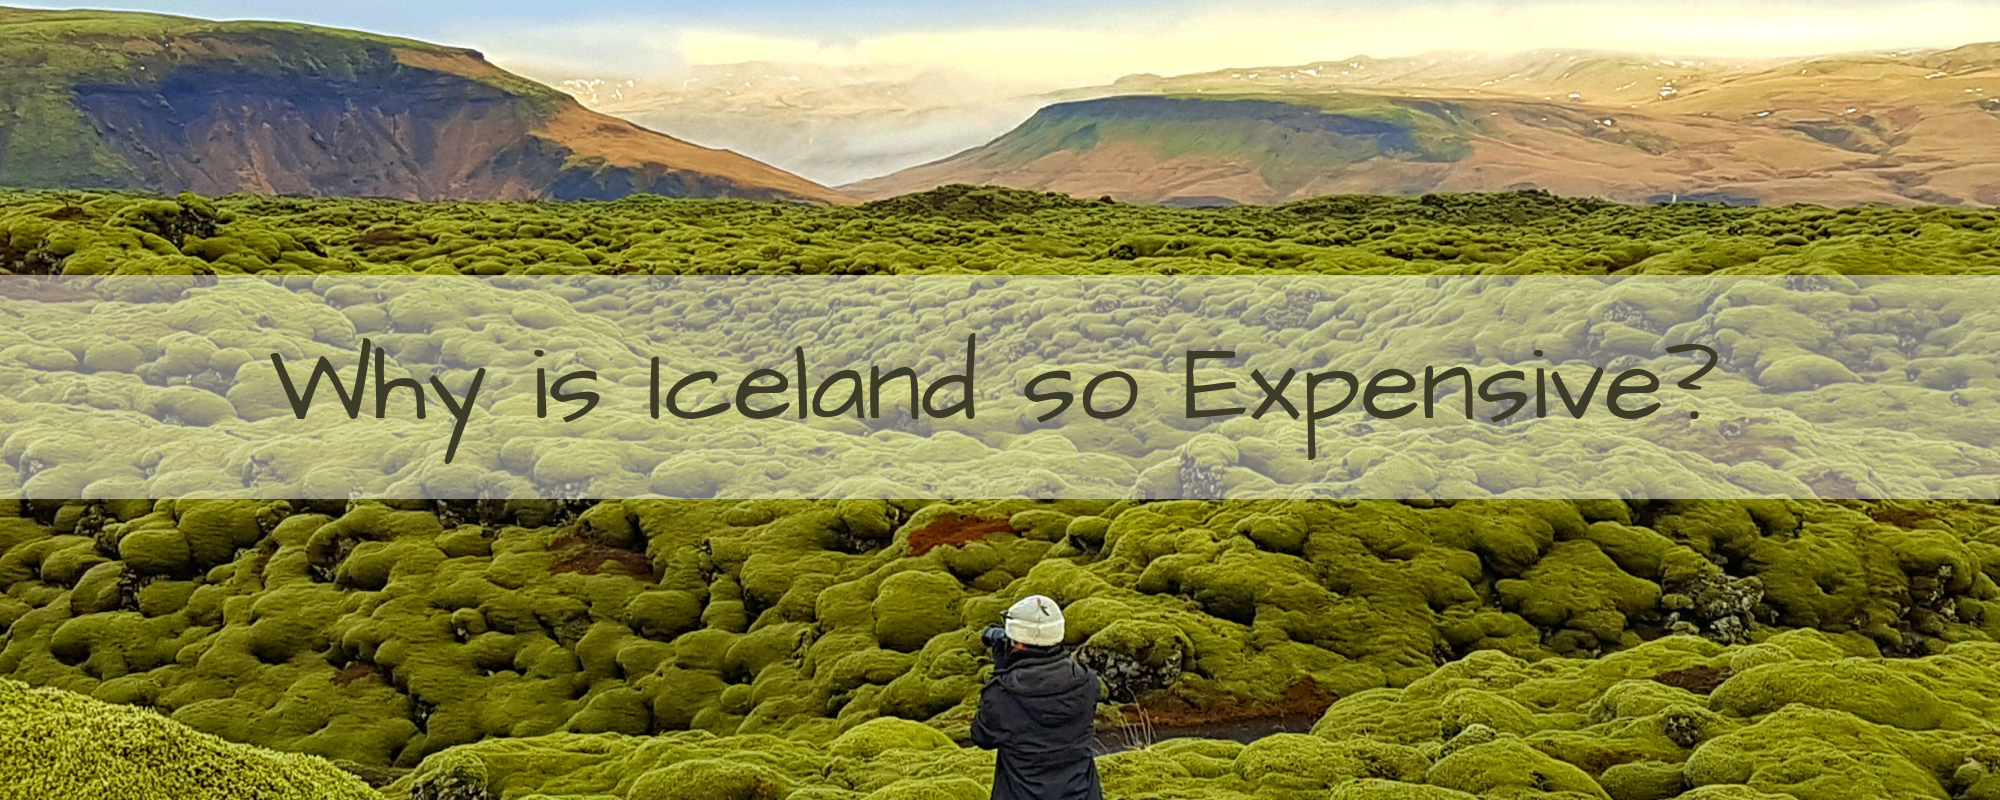 Why Is Iceland So Expensive?